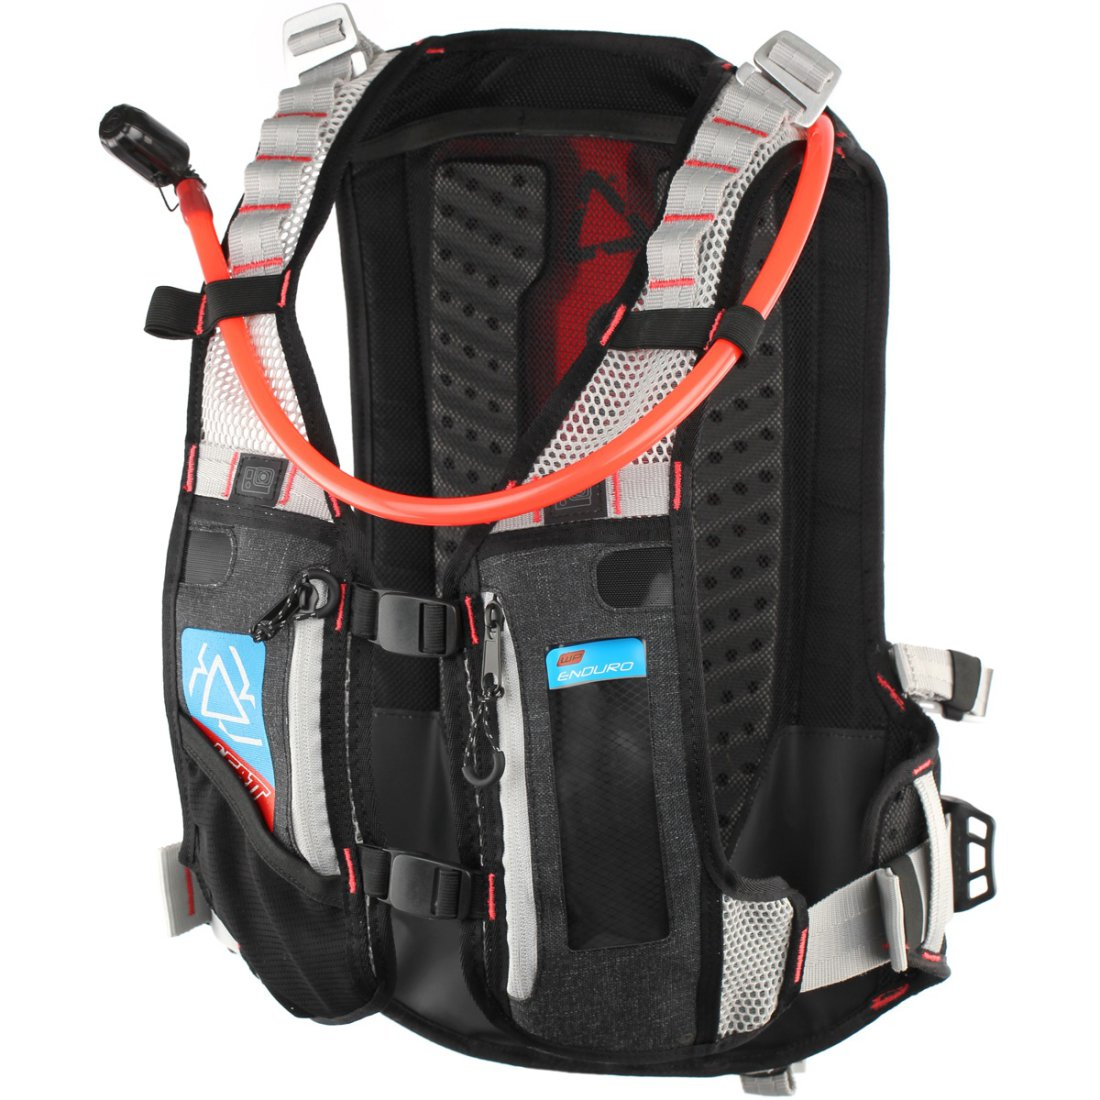 Sac LEATT Hydration Pack DBX Enduro Lite WP 2.0 UNICA